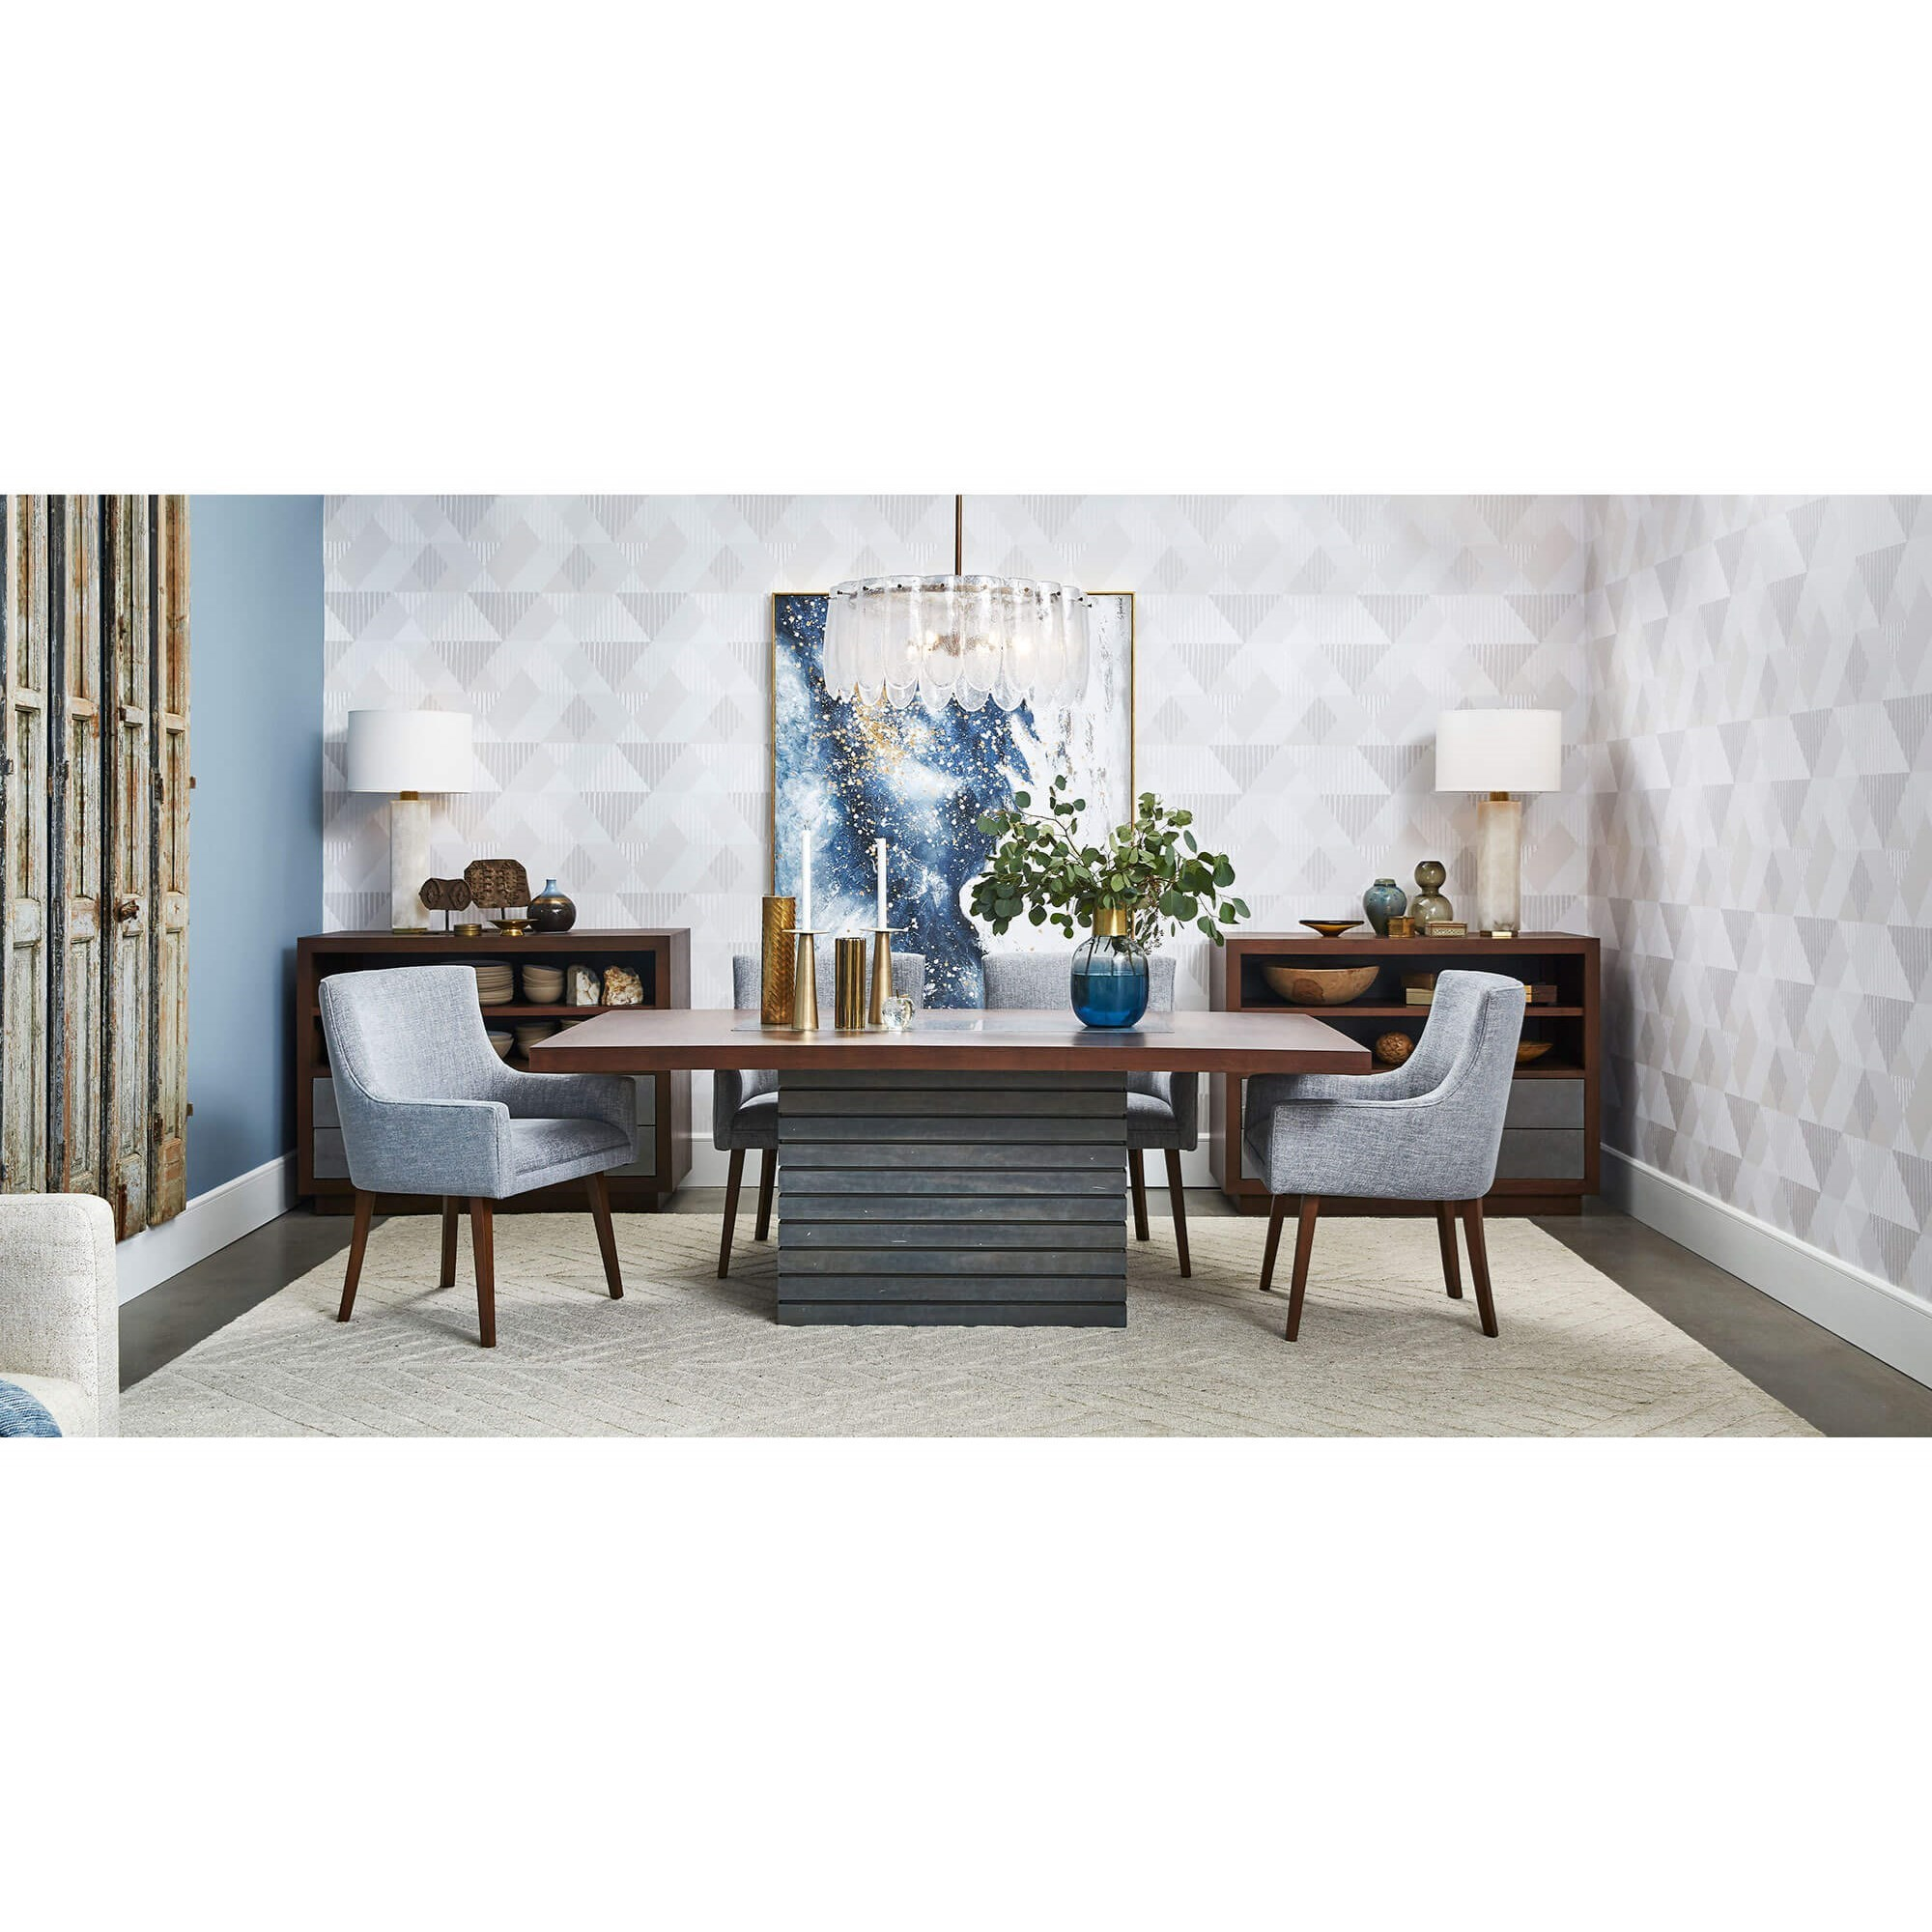 Boulevard Casual Dining Room Group by Palliser at Stoney Creek Furniture